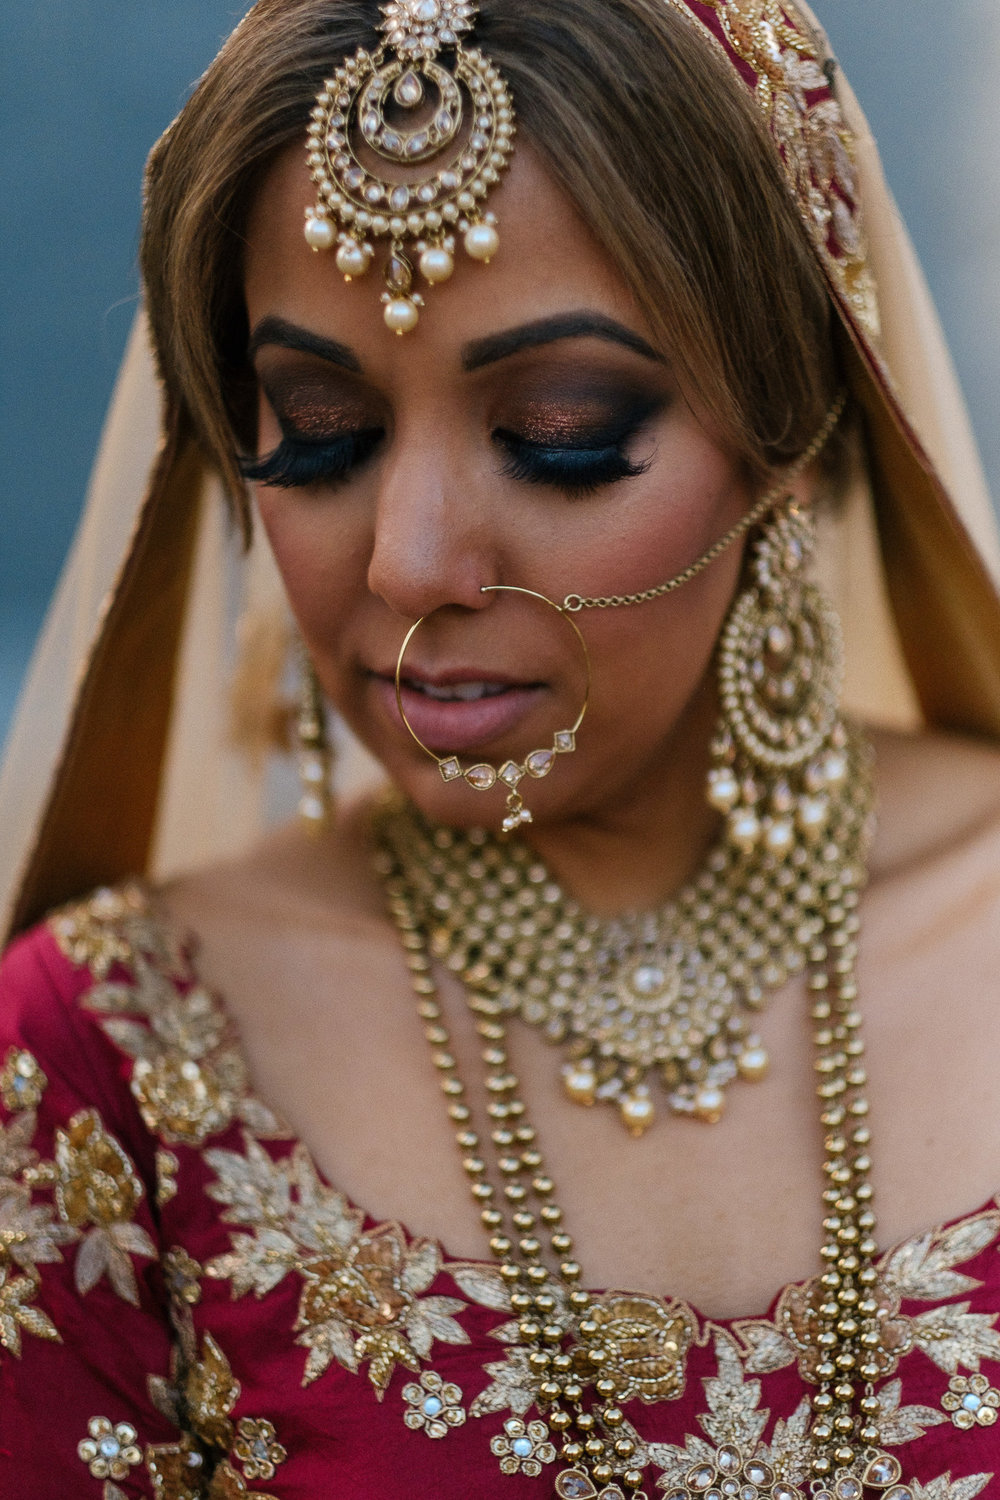 040_charlotte_indian_wedding_photographer.jpg